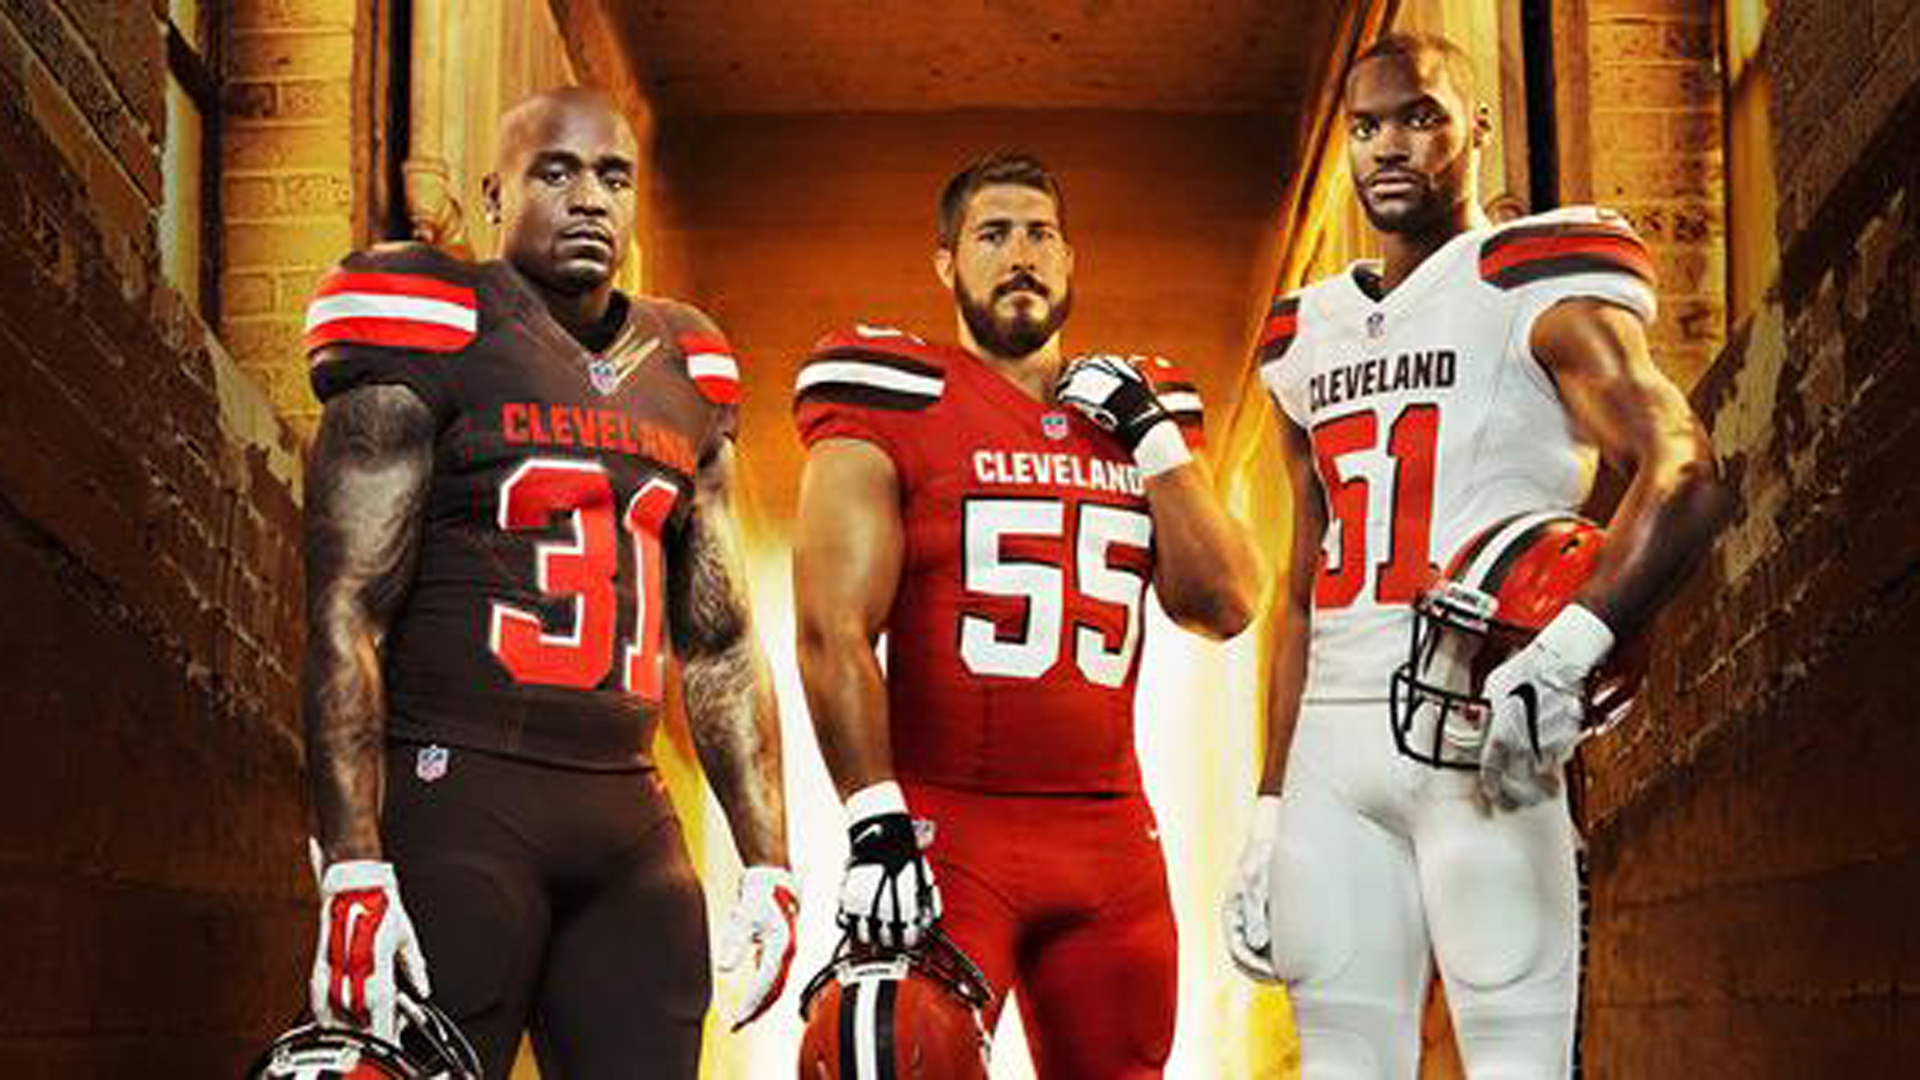 A visual history of Cleveland Browns uniforms | Sporting News  for sale